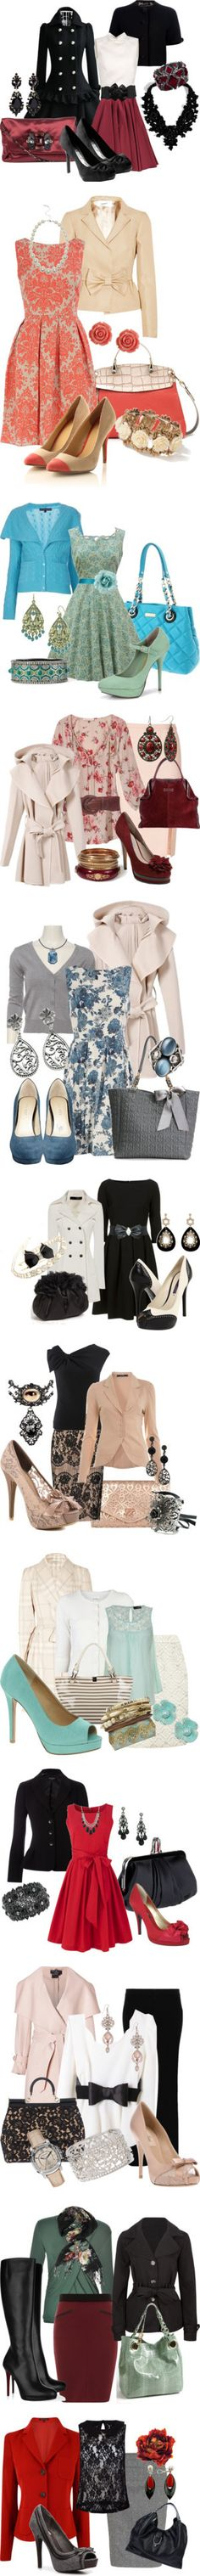 I love every outfit!